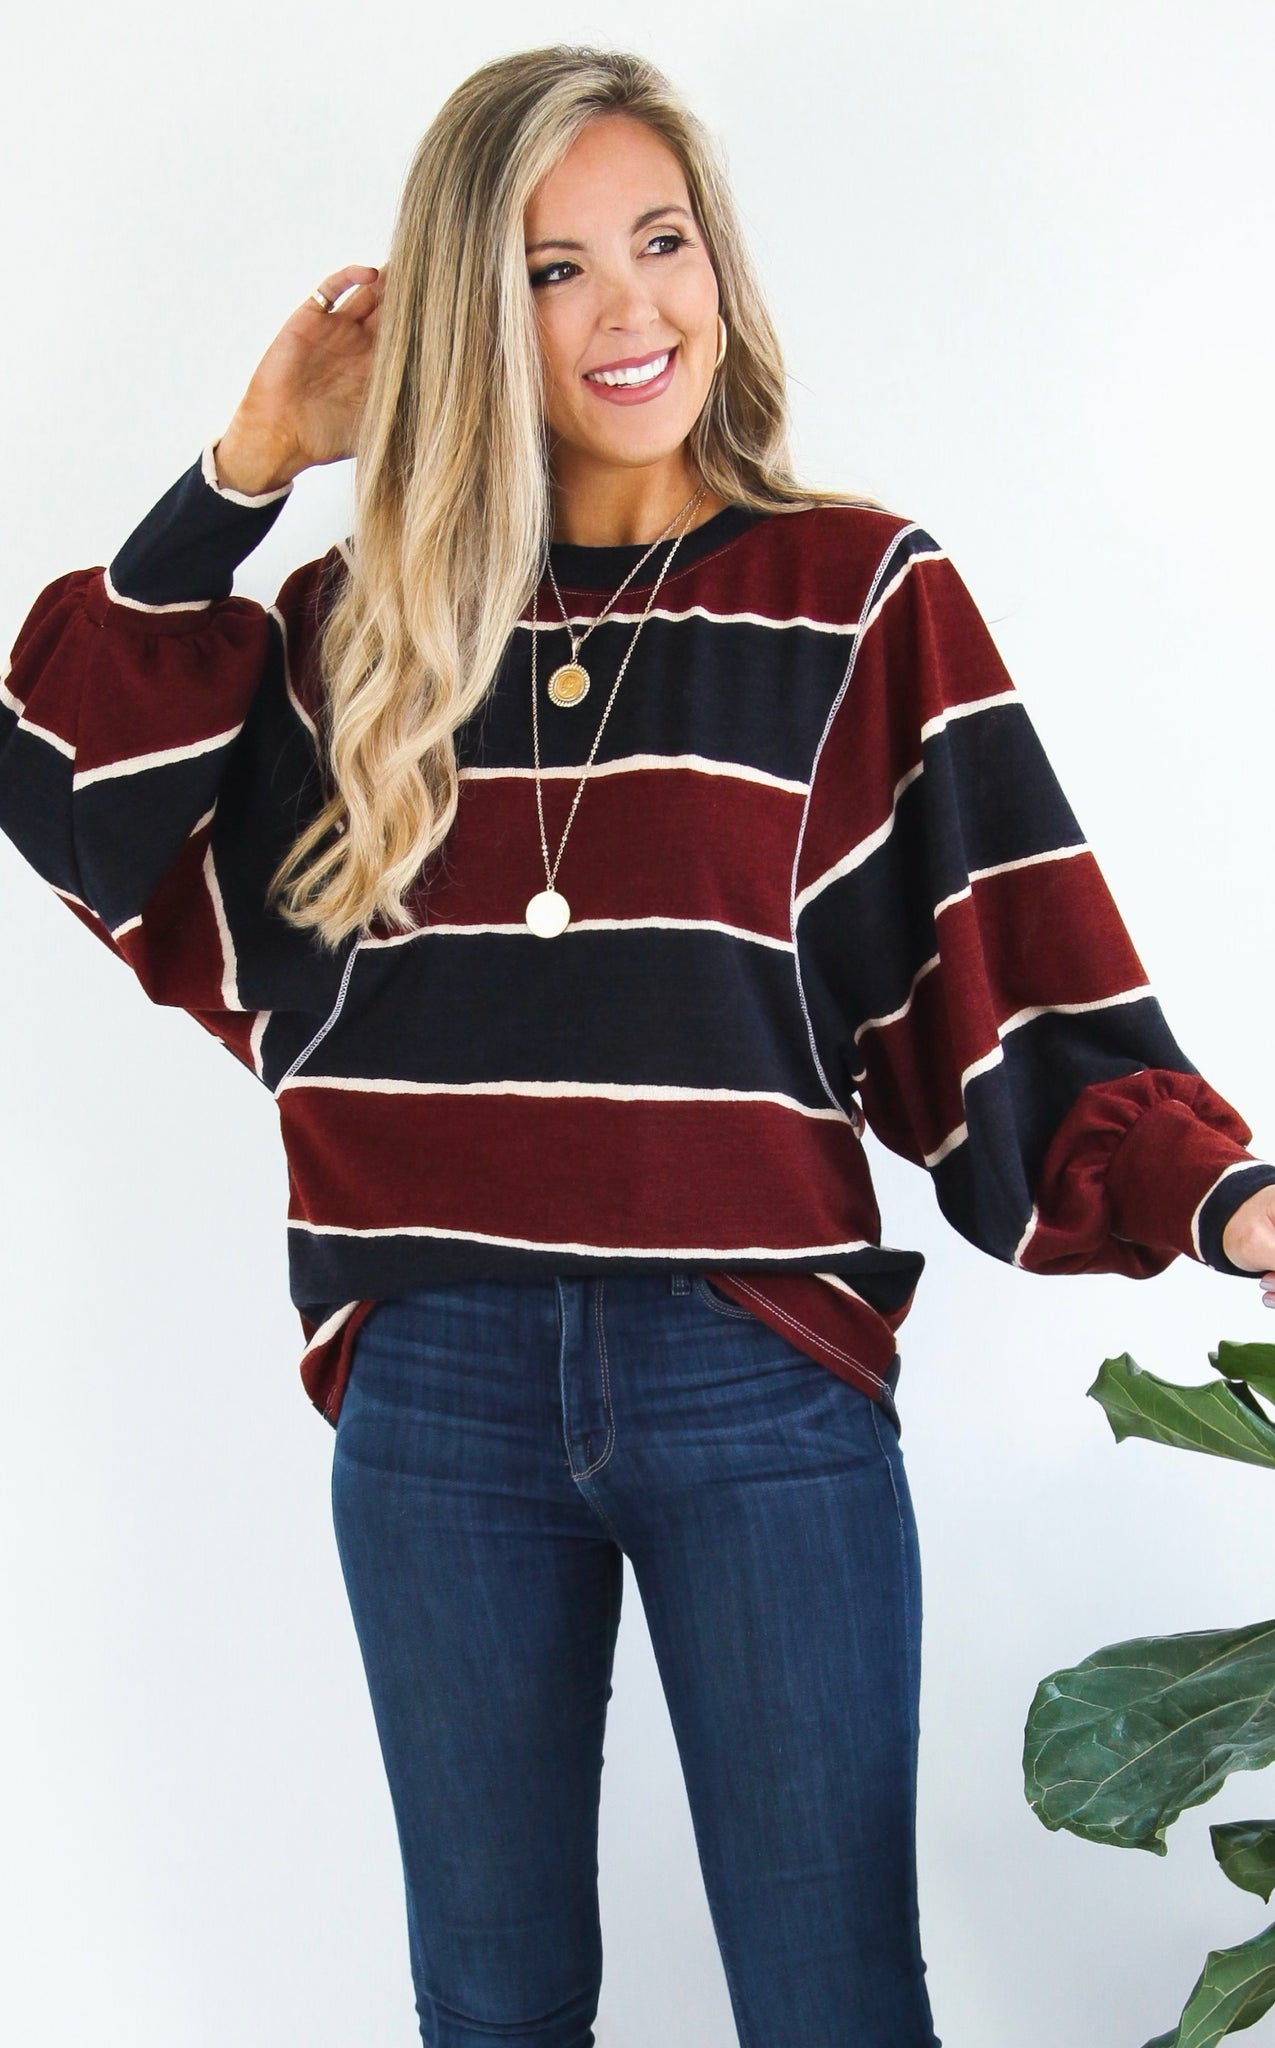 ELLE LAIN - IVY LEAGUE PULLOVER